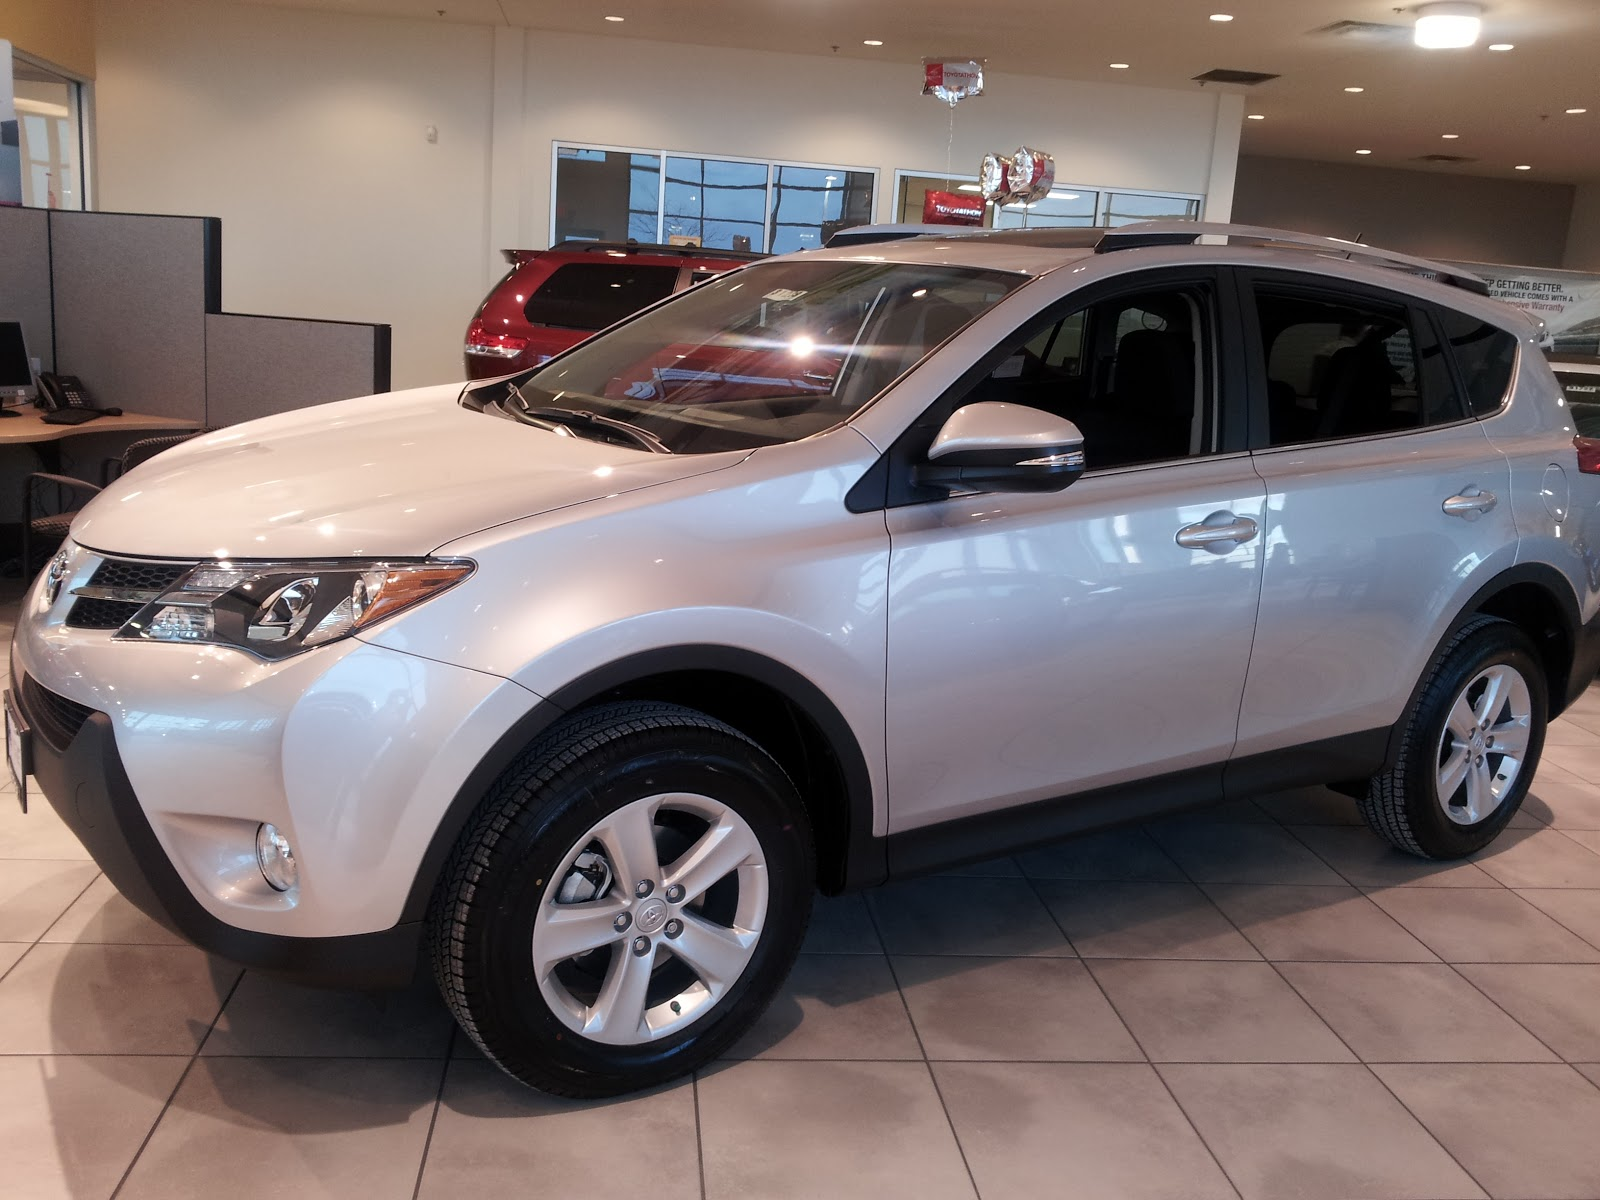 car lincoln enterprise sale sales trucks vehicles waukesha cars suvs dealership dealer certified featured used milwaukee location for